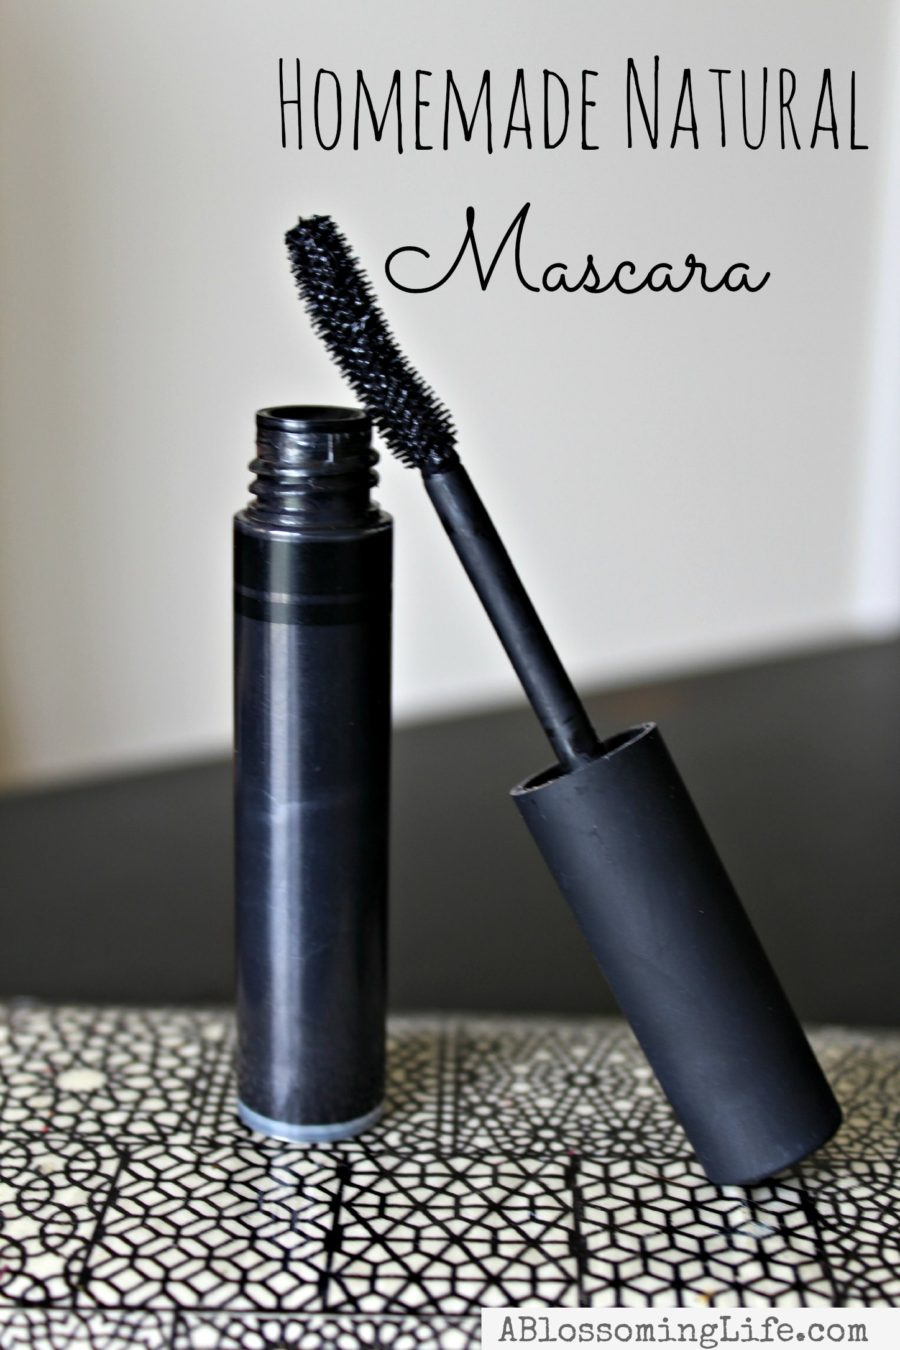 natural homemade mascara on a patterned plate